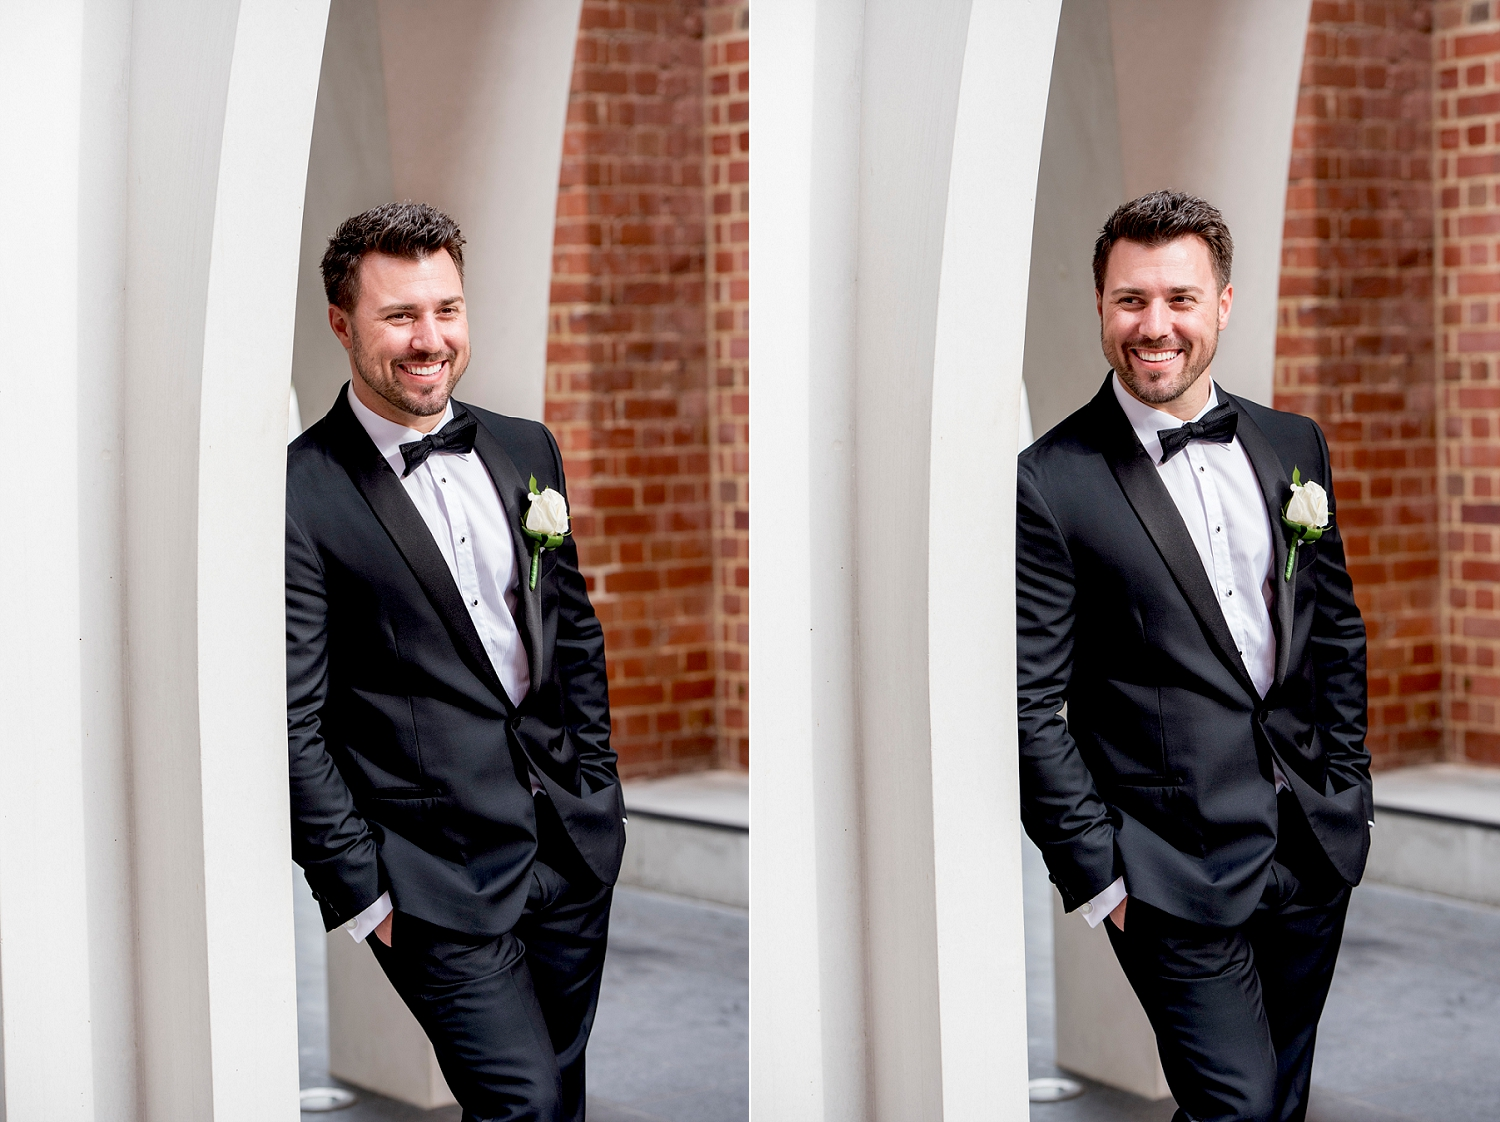 49_st georges cathedral wedding arches perth.jpg